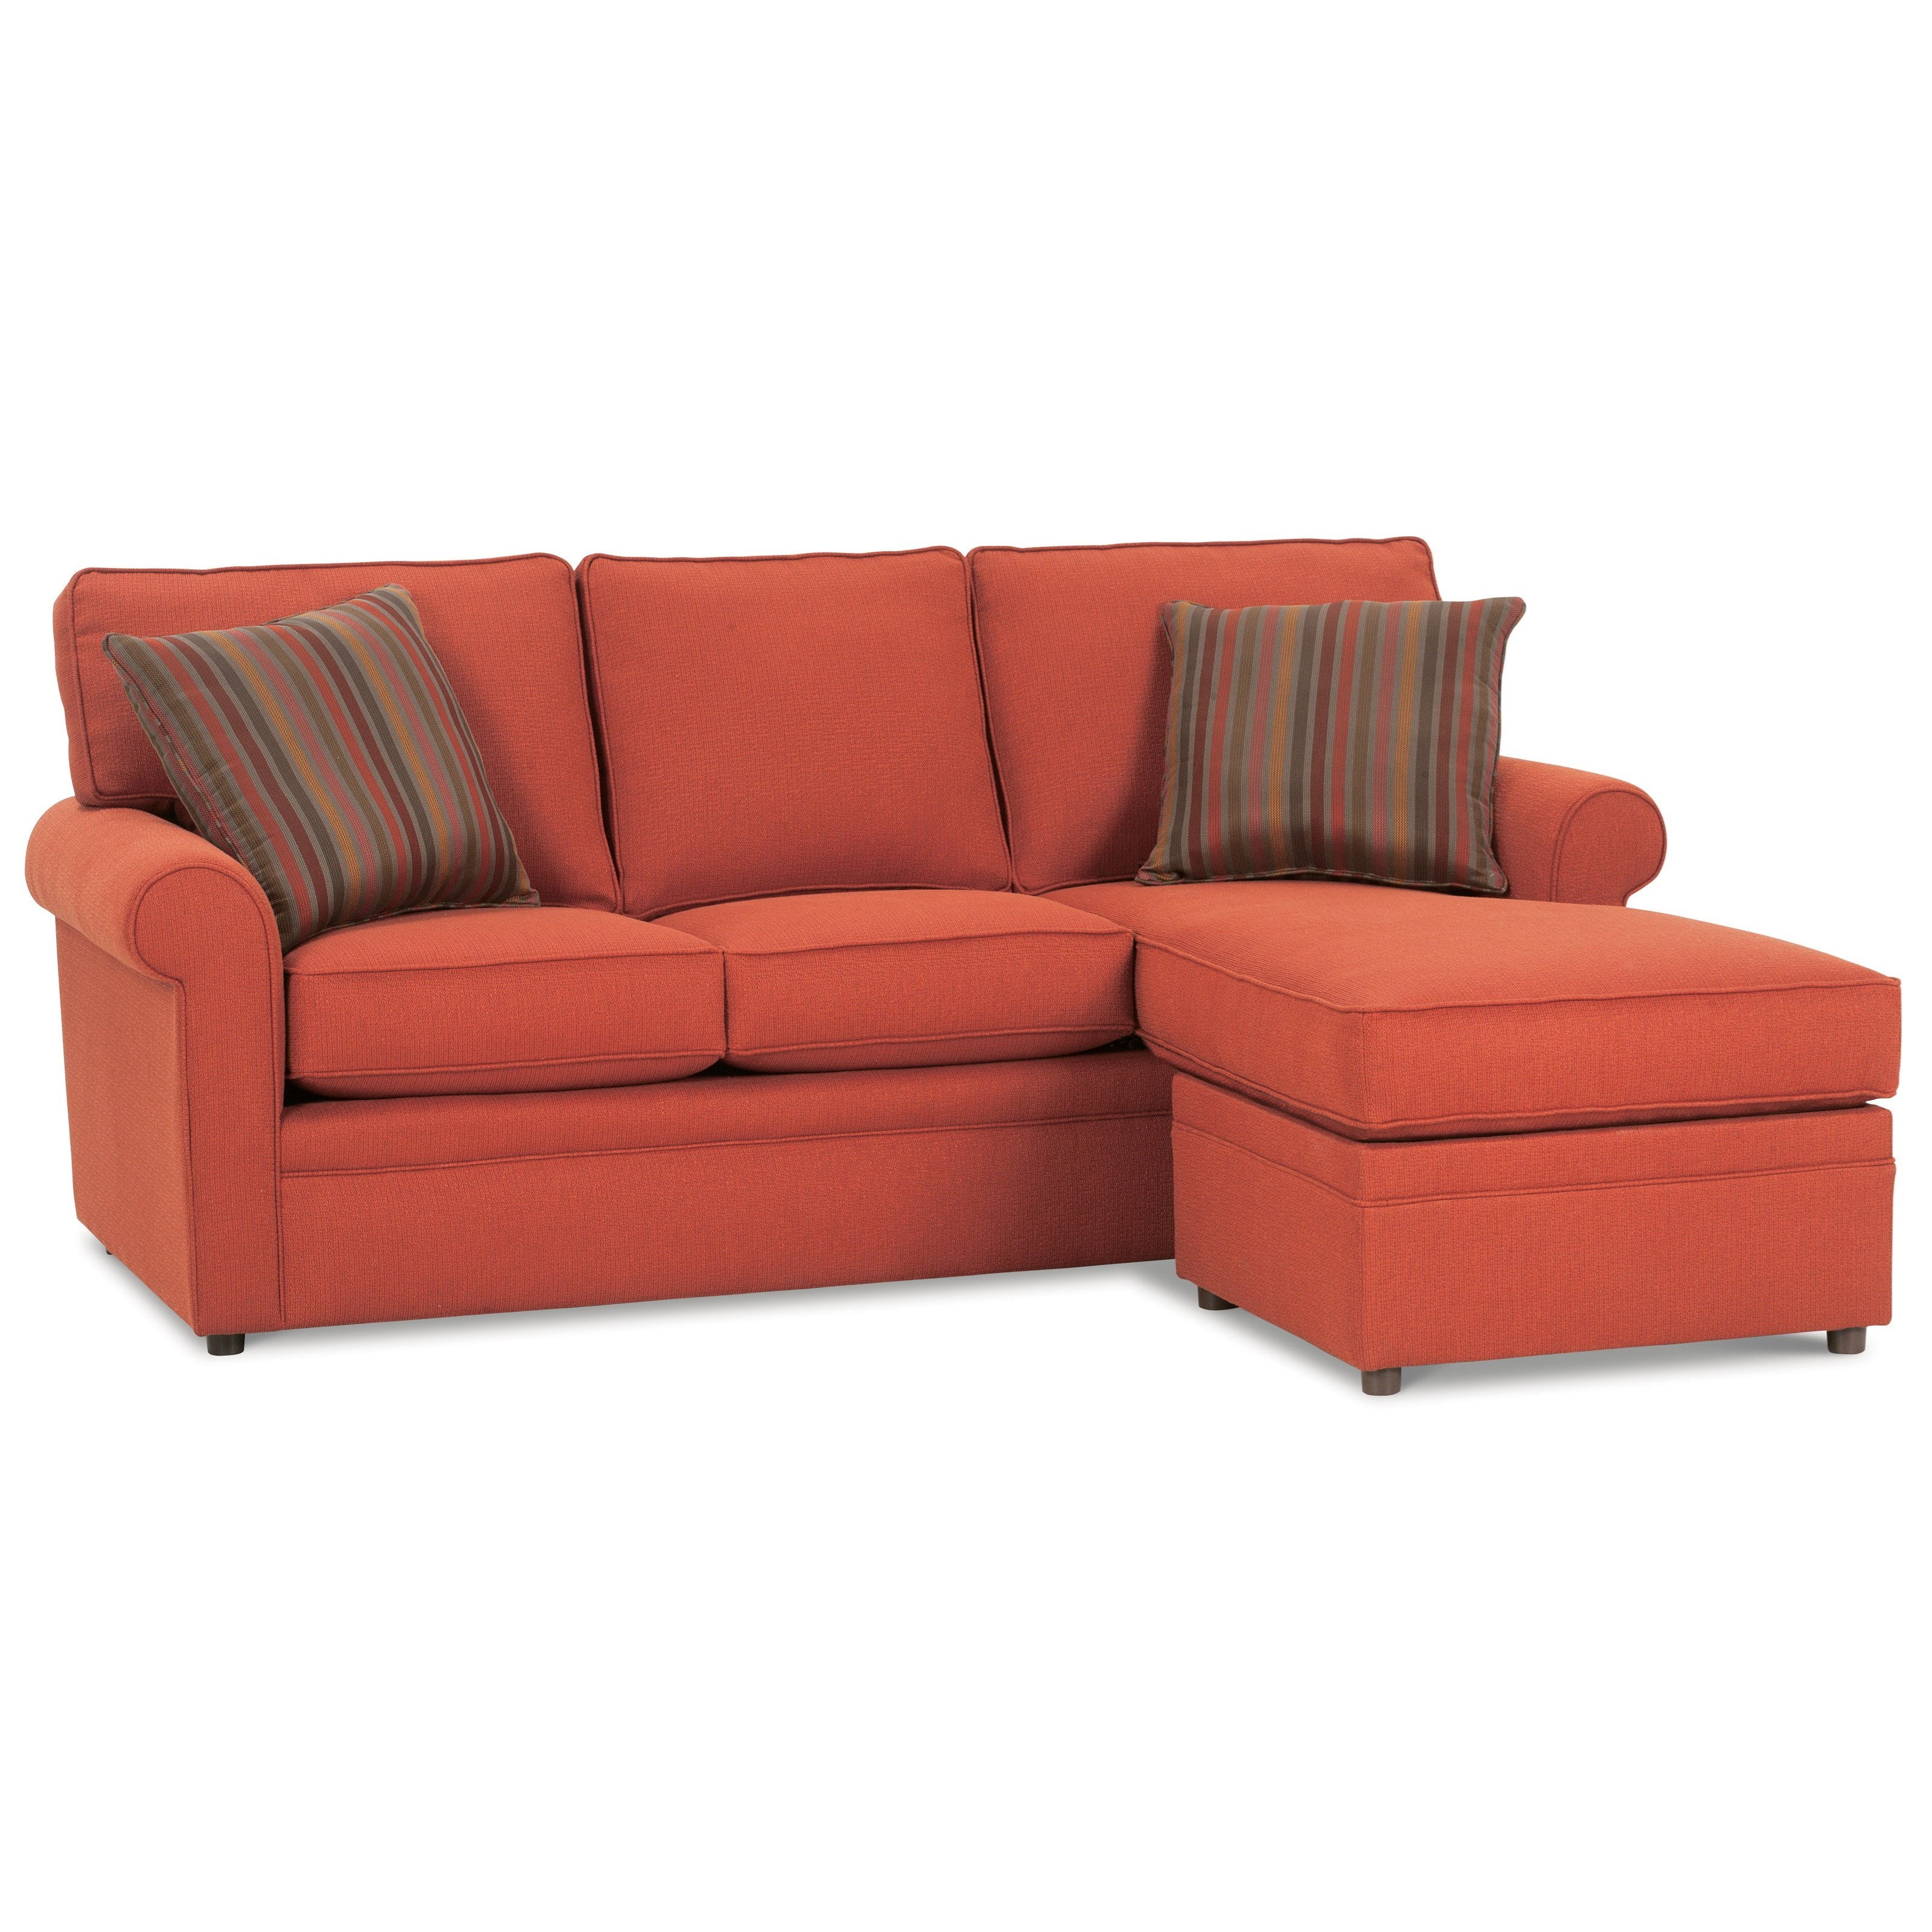 Groovy Rowe Dalton Sofa With Reversible Chaise Ottoman Belfort Pabps2019 Chair Design Images Pabps2019Com